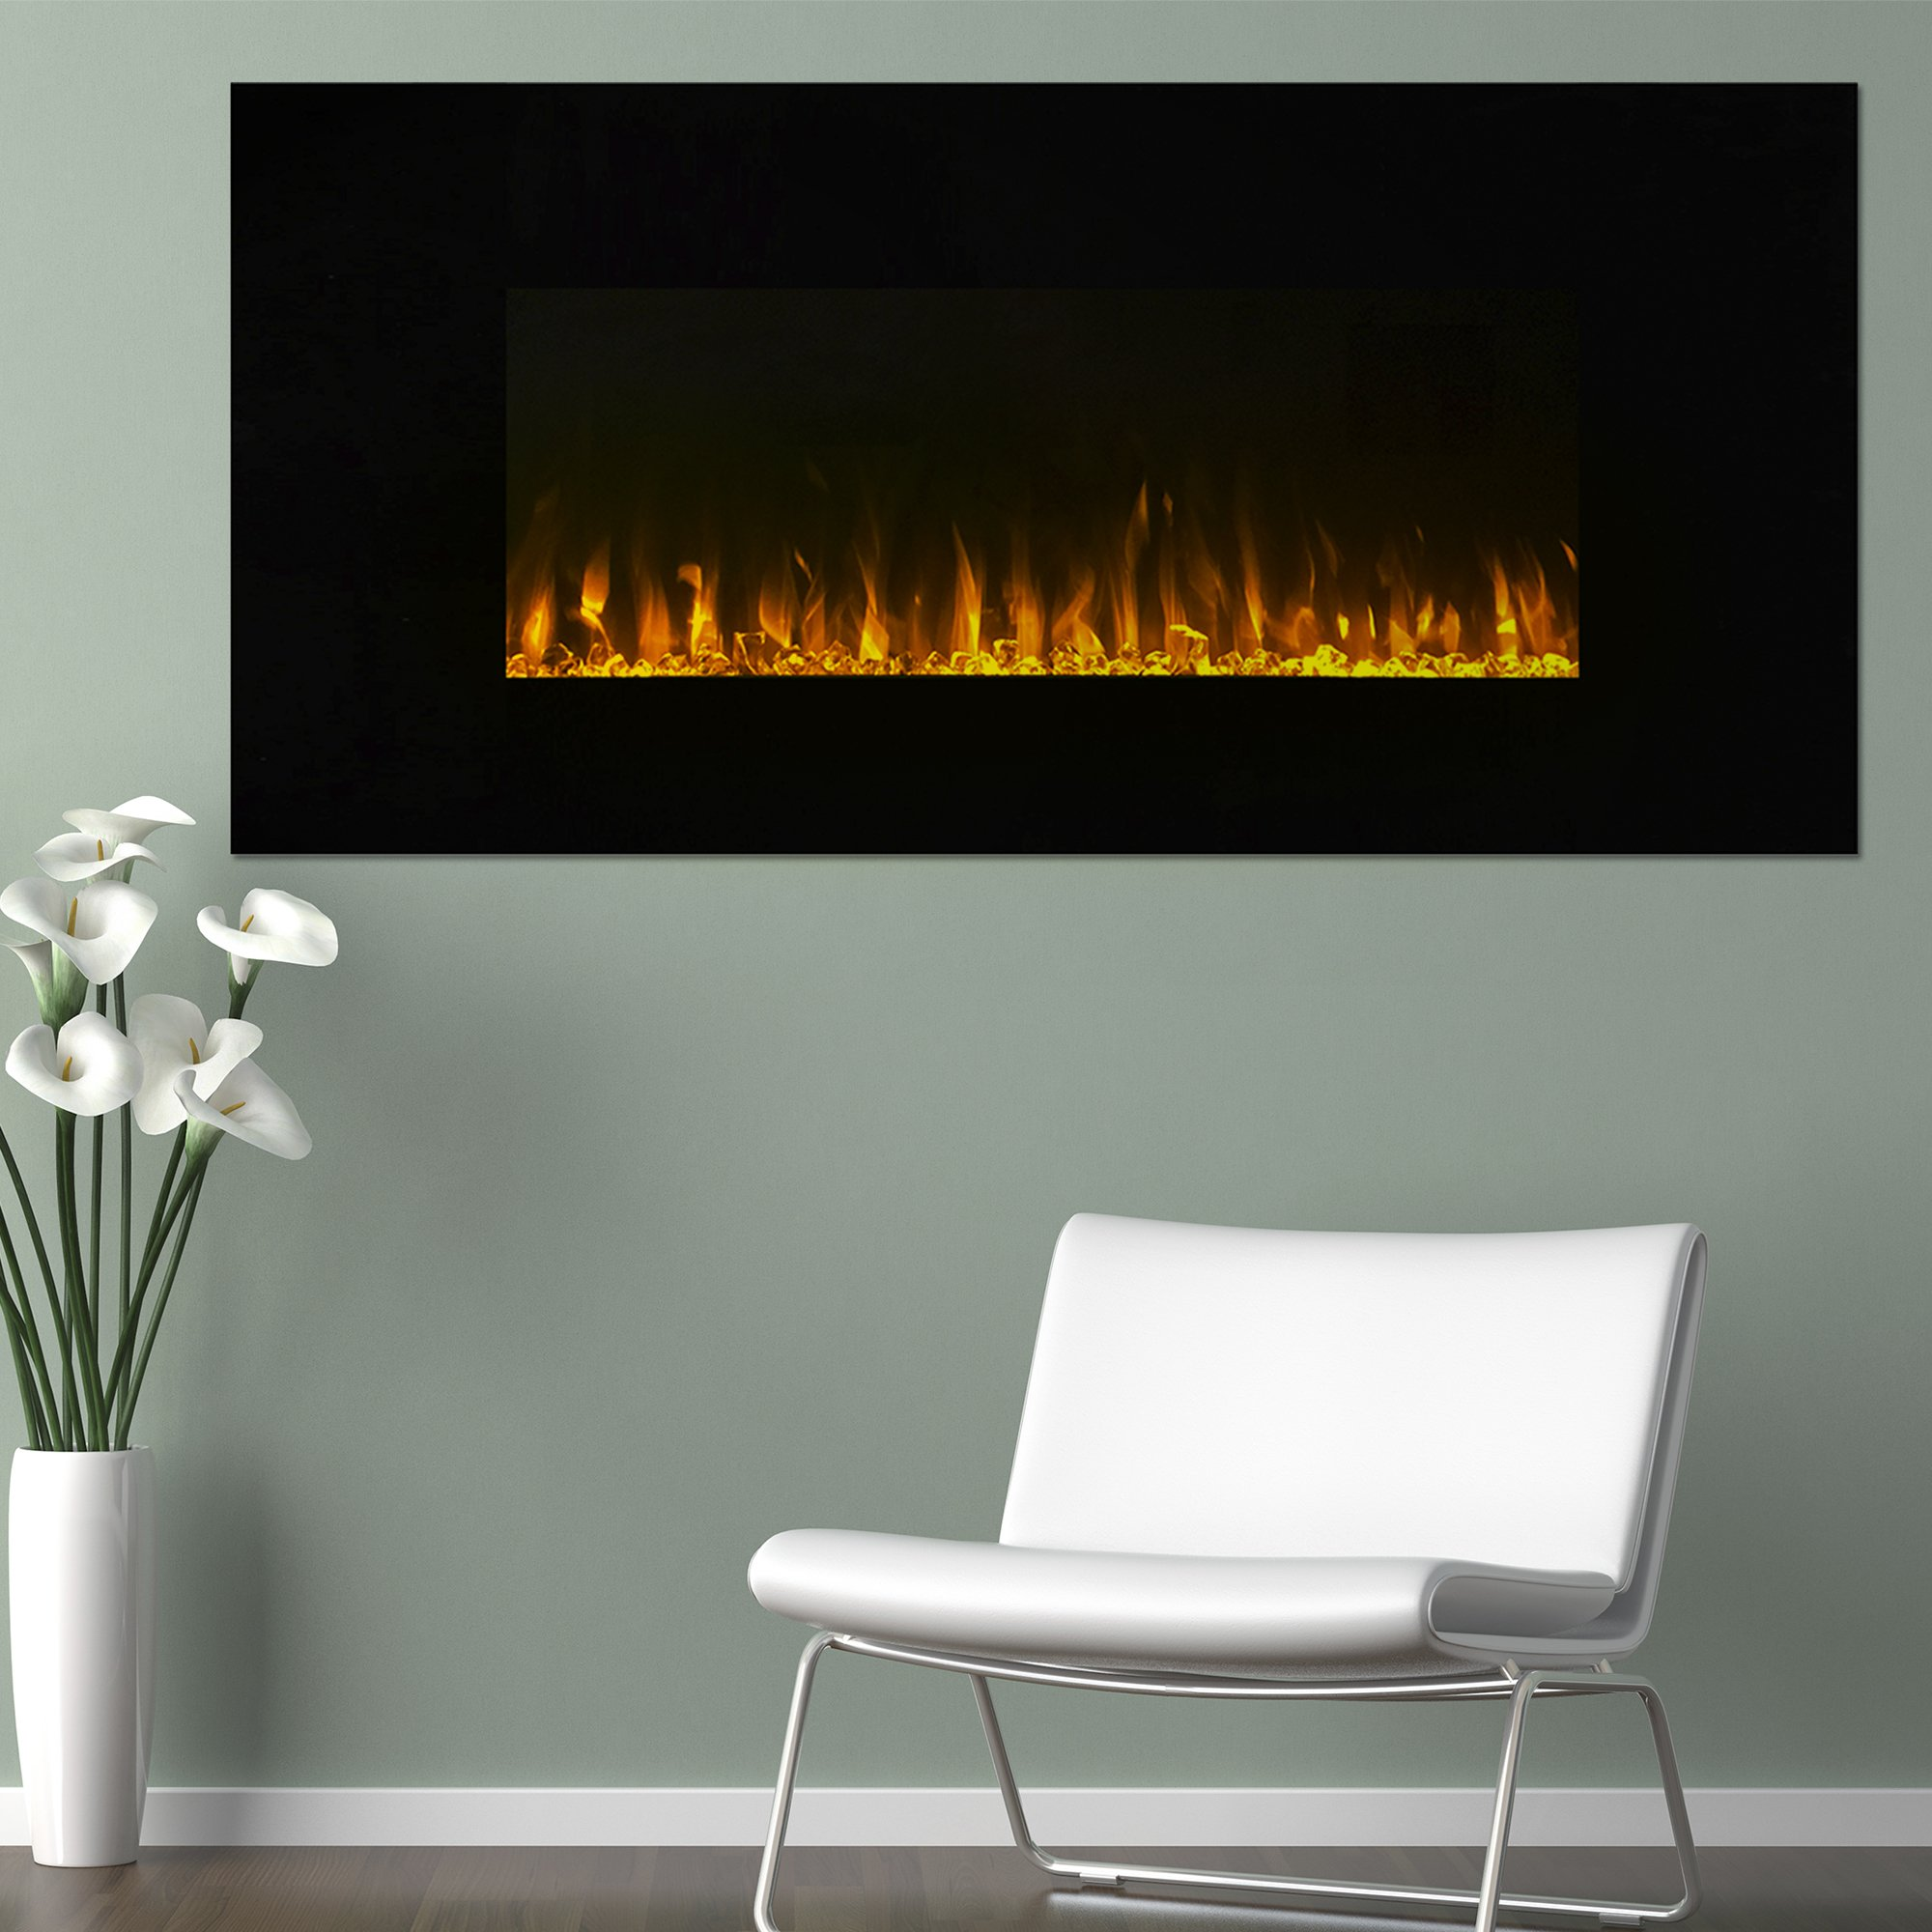 Electric Fireplace Wall Mounted, LED Fire and Ice Flame, With Remote 42 inch by Northwest by Northwest (Image #3)